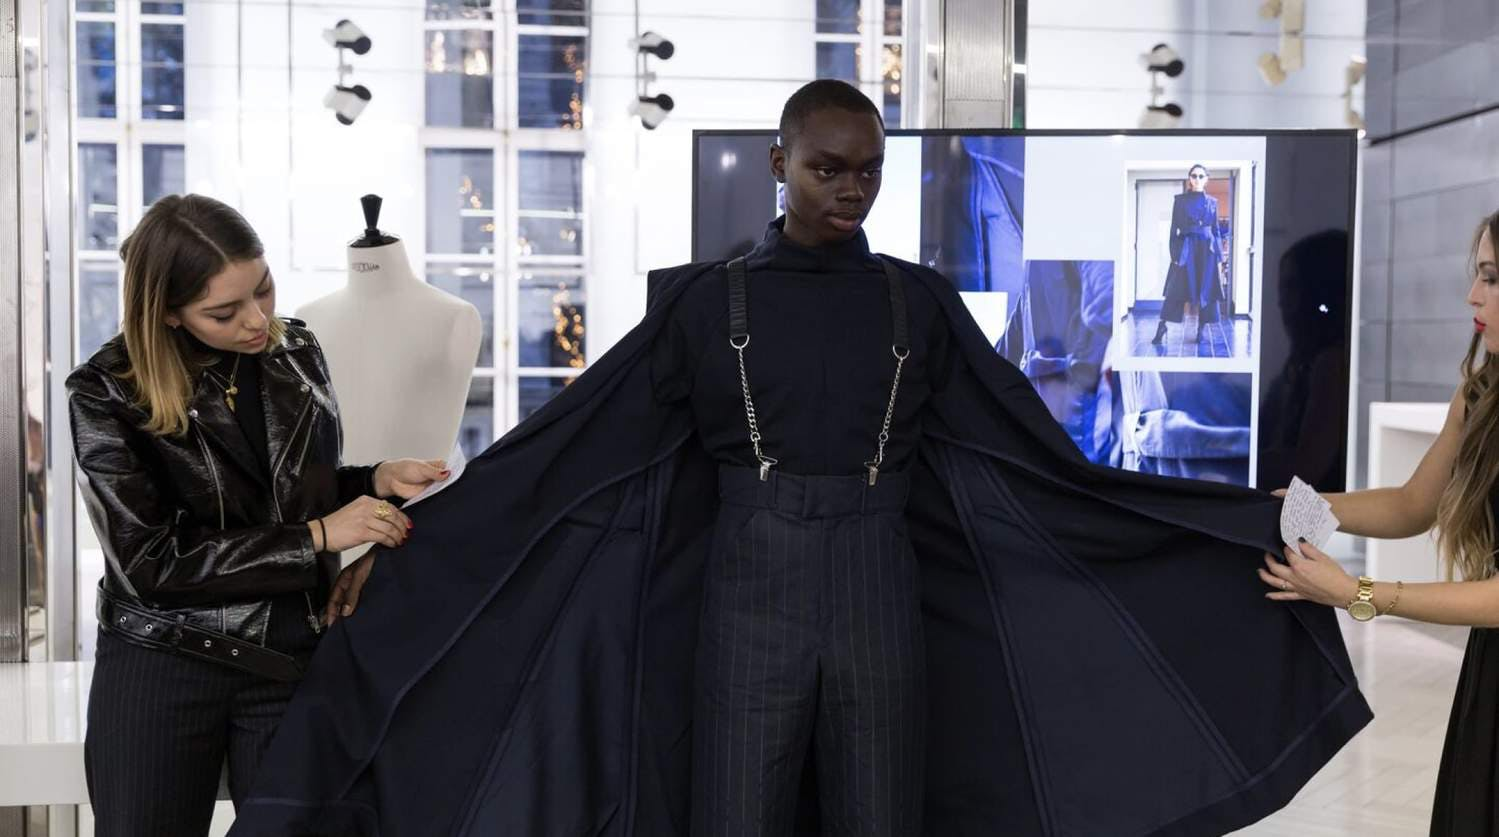 Decorative: Man being fitted into garment at a fashion show